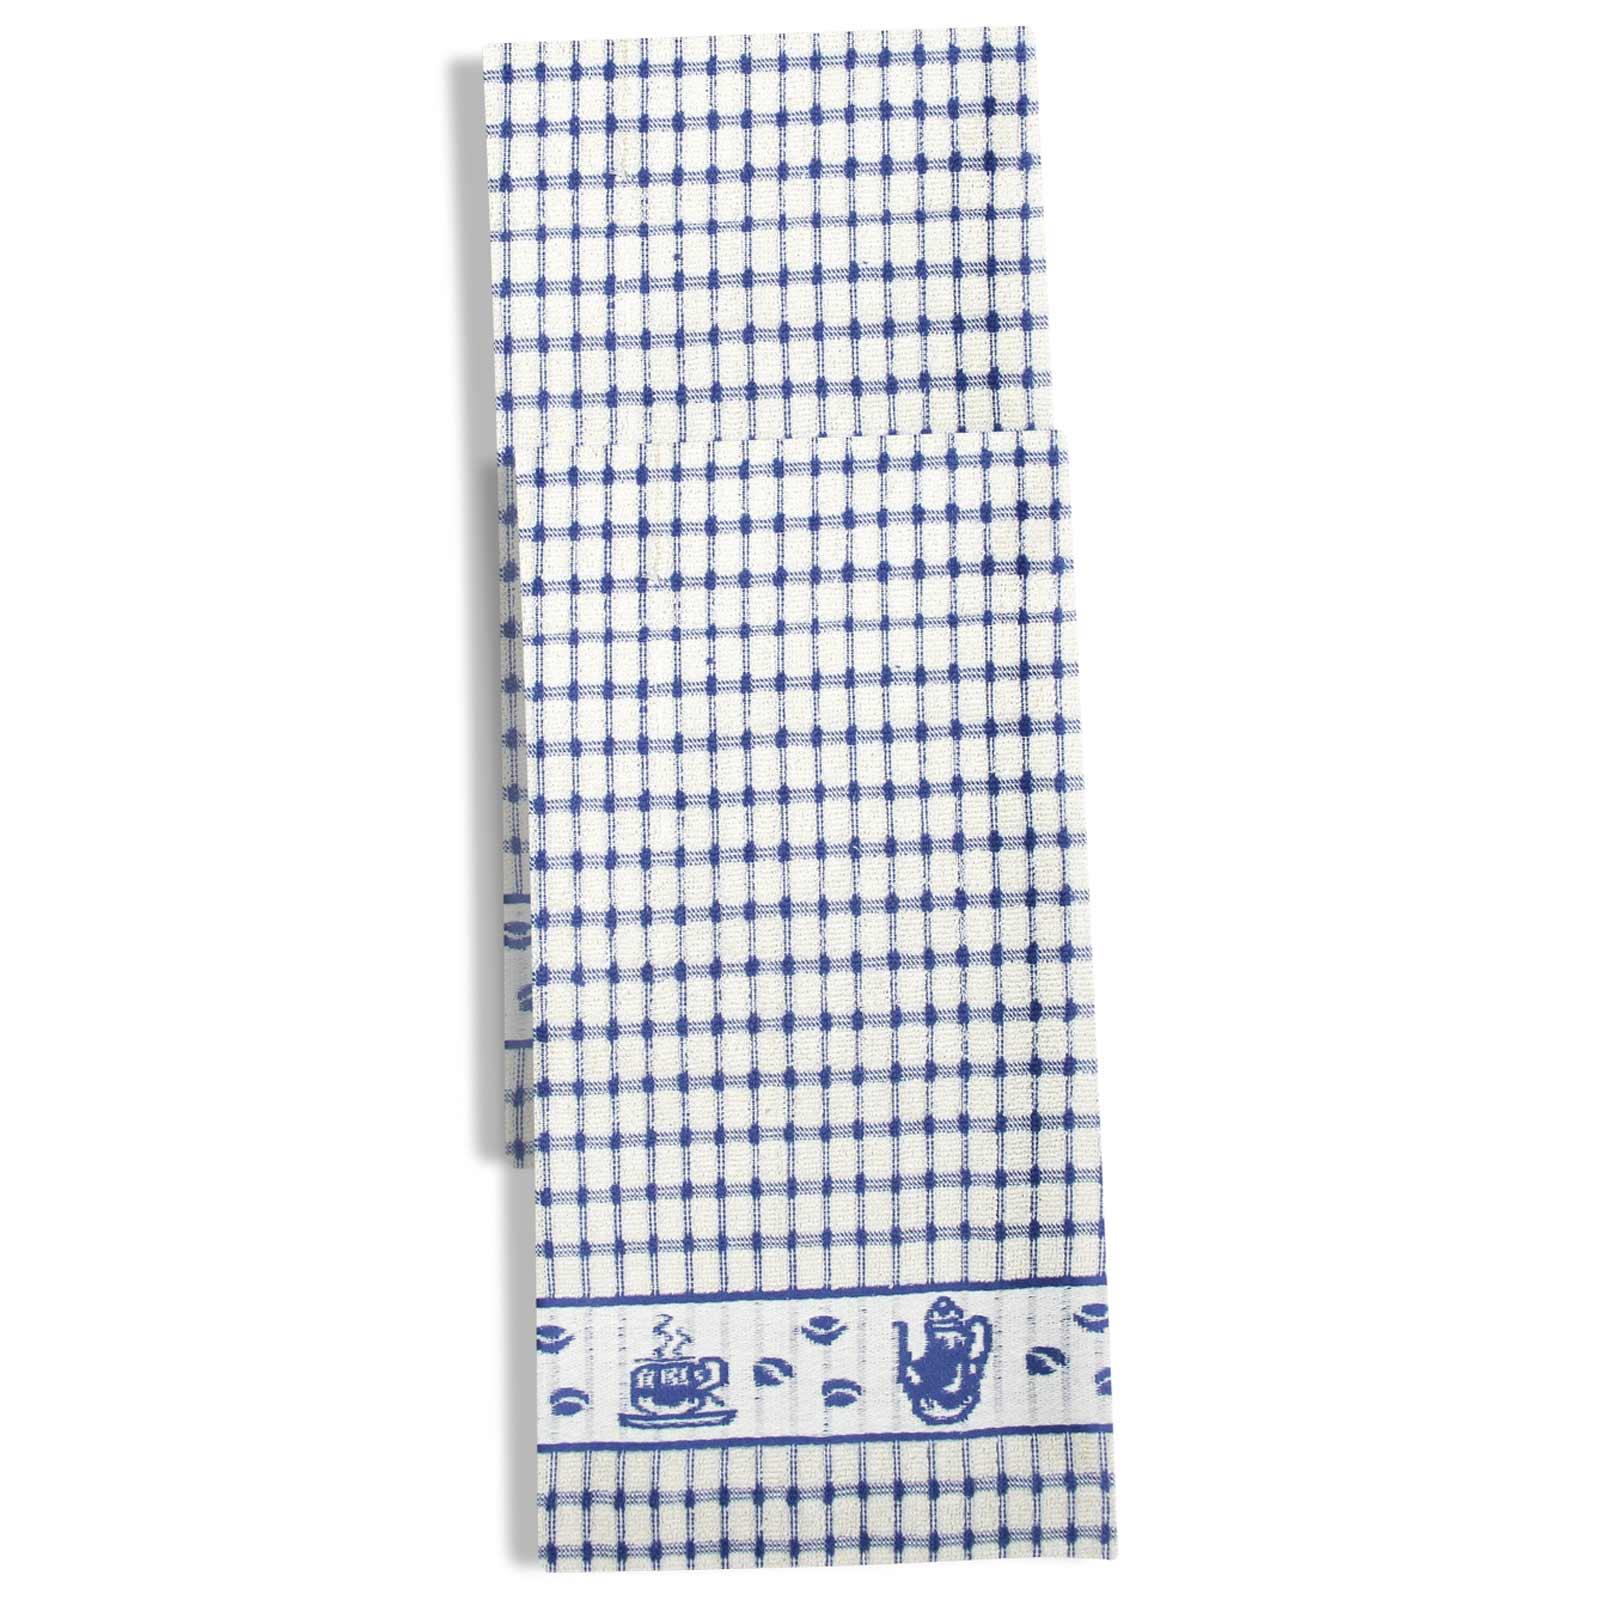 Packs-of-2-4-6-12-Tea-Towels-100-Cotton-Terry-Kitchen-Dish-Drying-Towel-Sets thumbnail 36